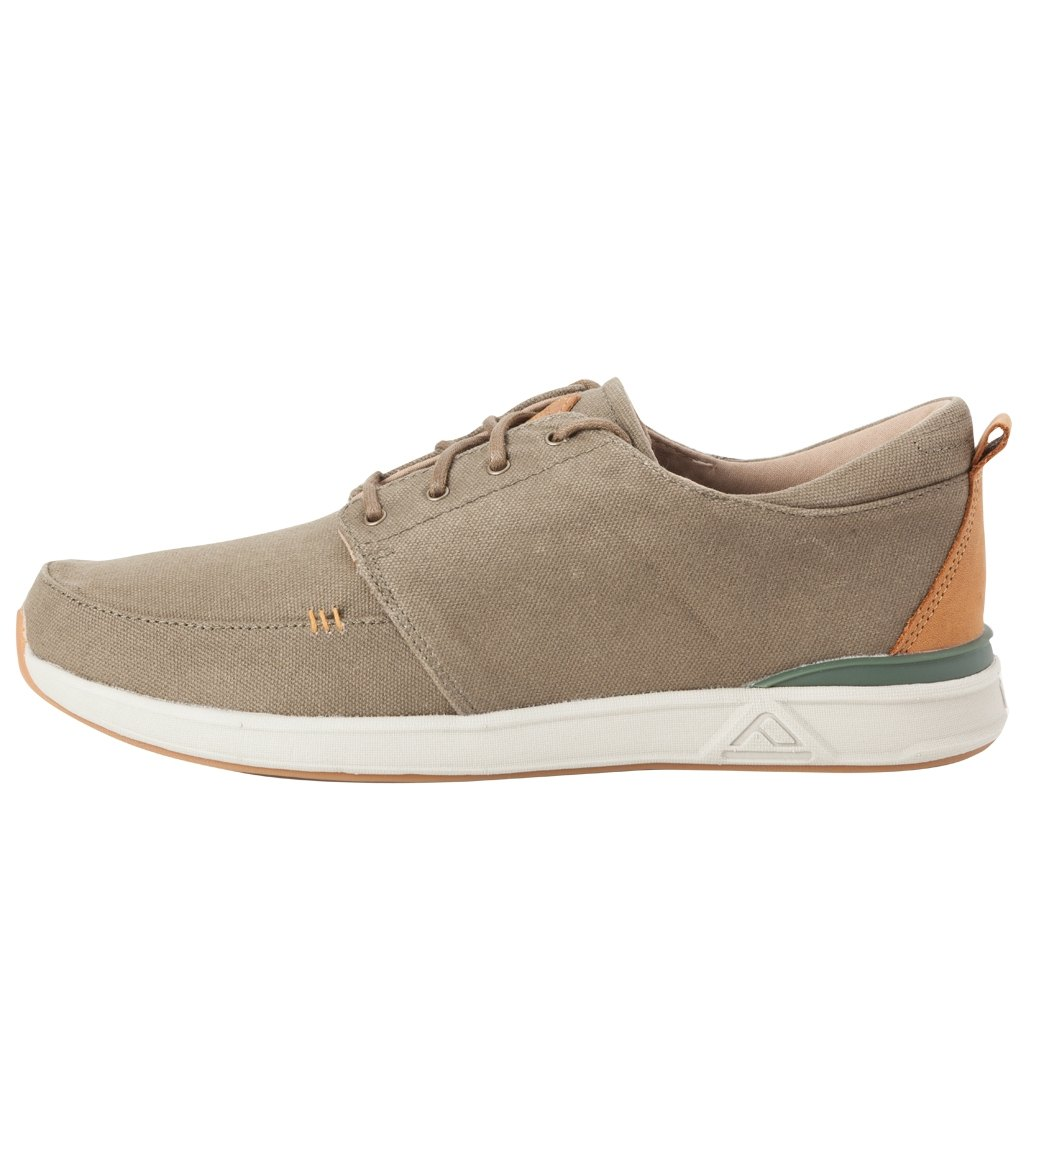 Low Tx Men's Reef Reef Rover Men's 76IvmgfYby